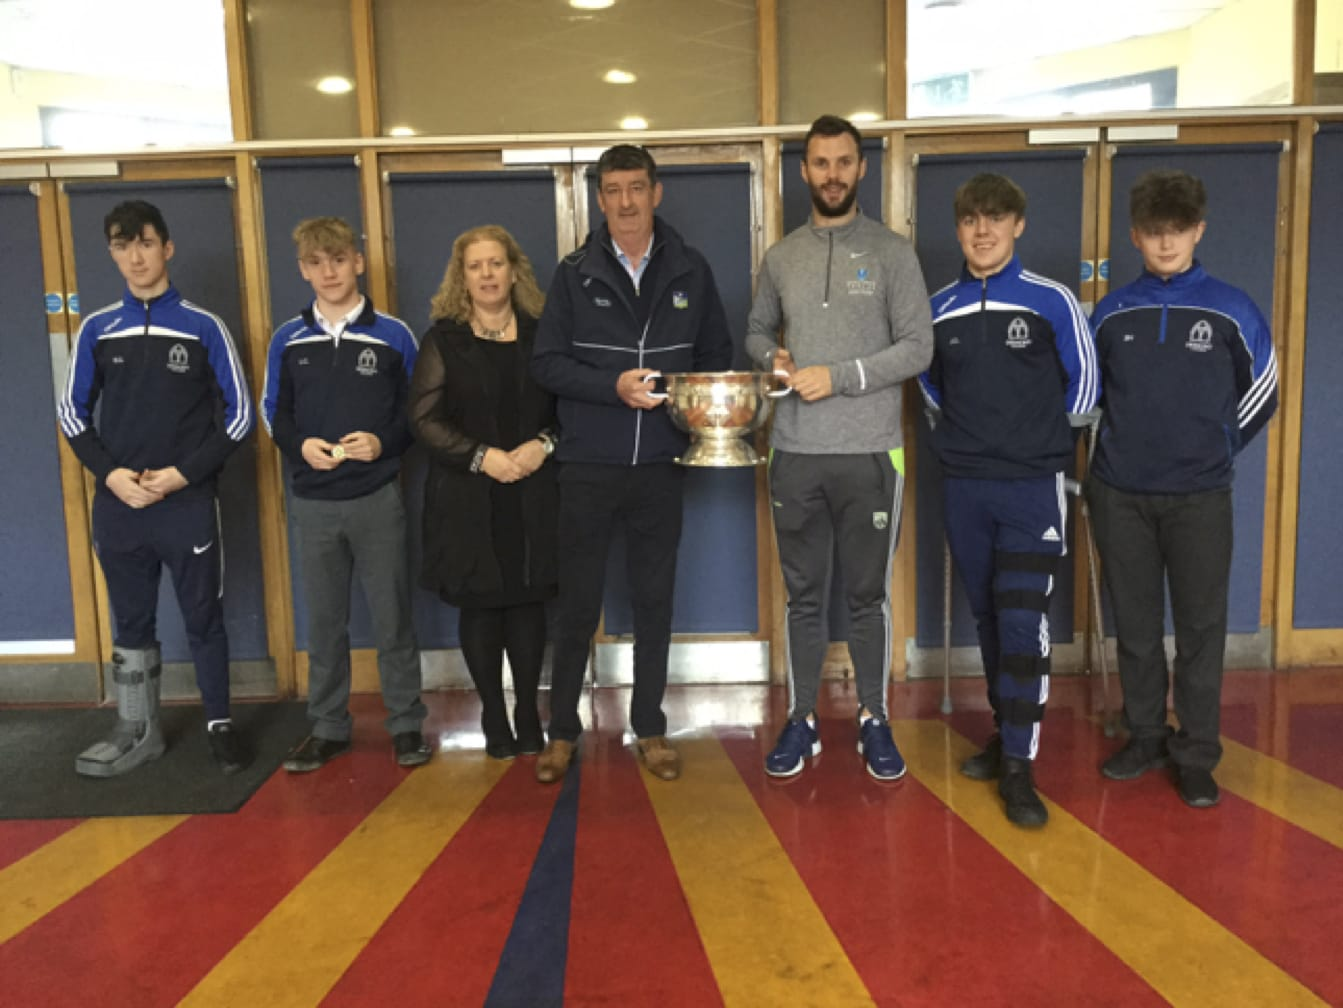 Oct 2017: Desmond College Football team presented with their County Football victory medals by Limerick County Football Chairman John Cregan